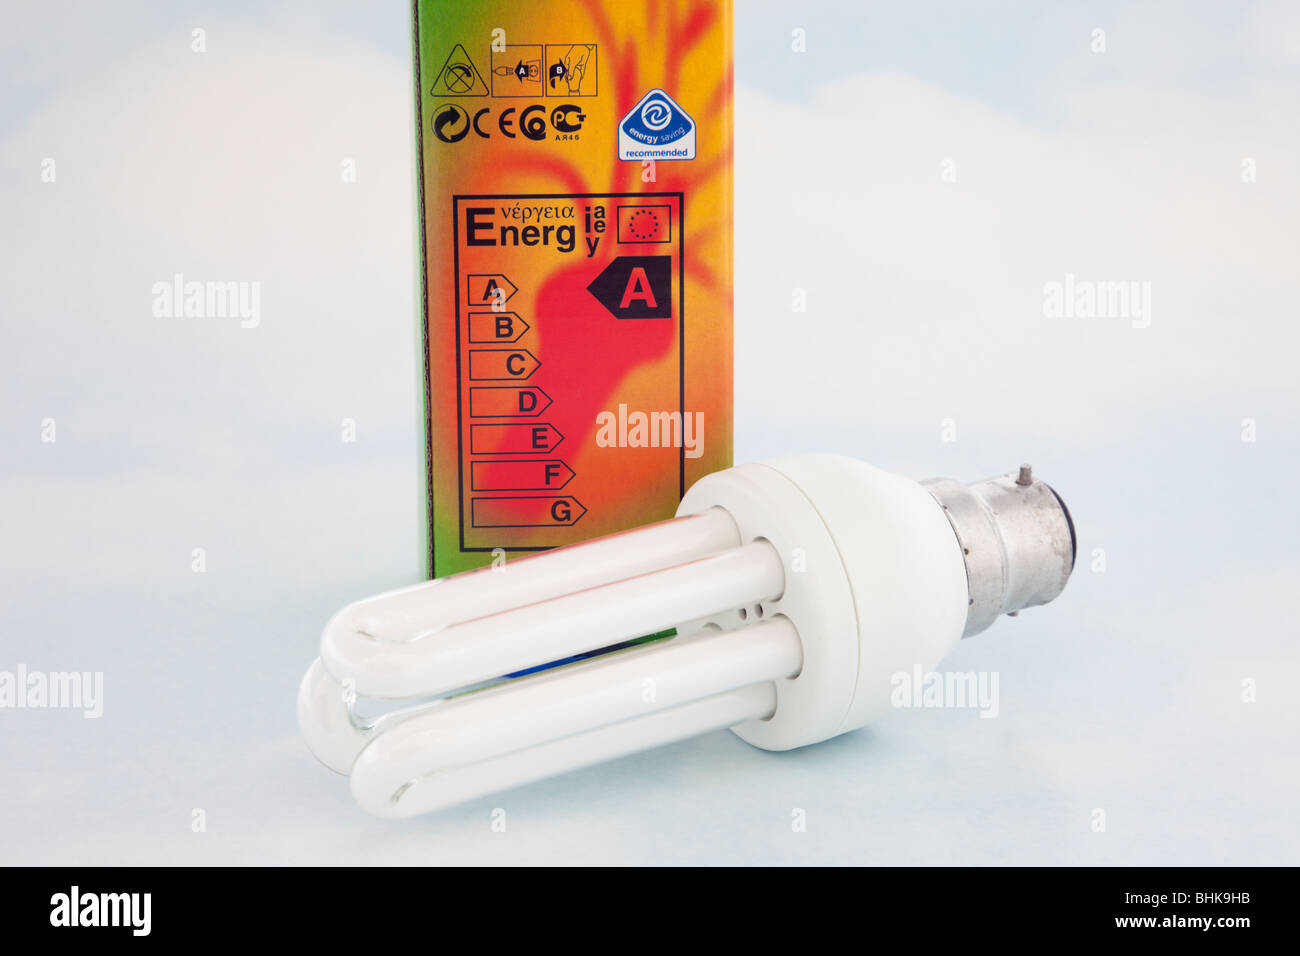 Studio UK Europe. Long life low energy light bulb and box with energy rating label - Stock Image